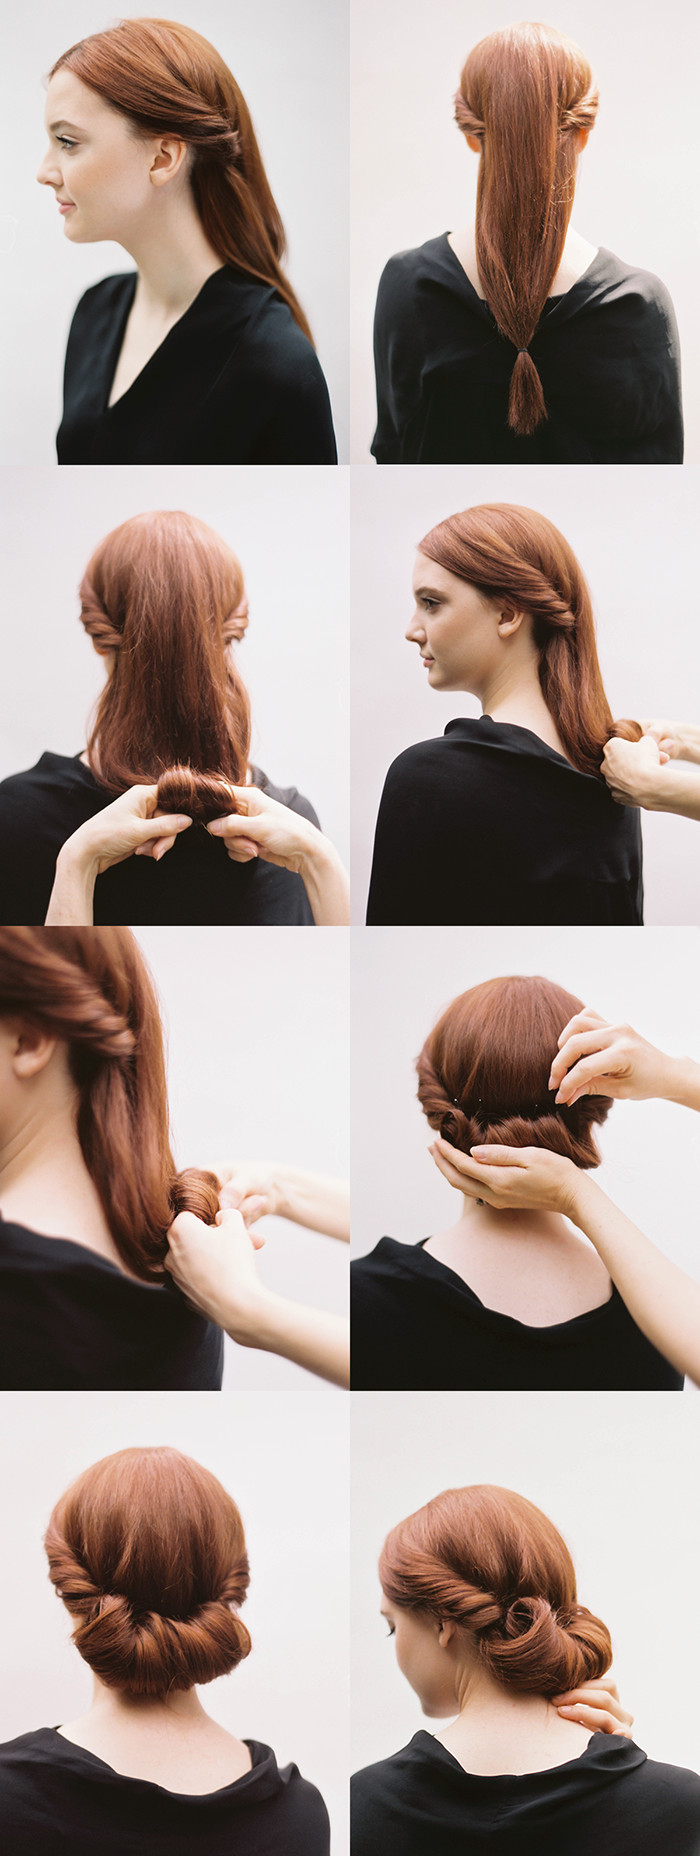 Best ideas about DIY Wedding Hairstyles For Long Hair . Save or Pin DIY Rolled Chignon Hair Tutorial DIY Now.